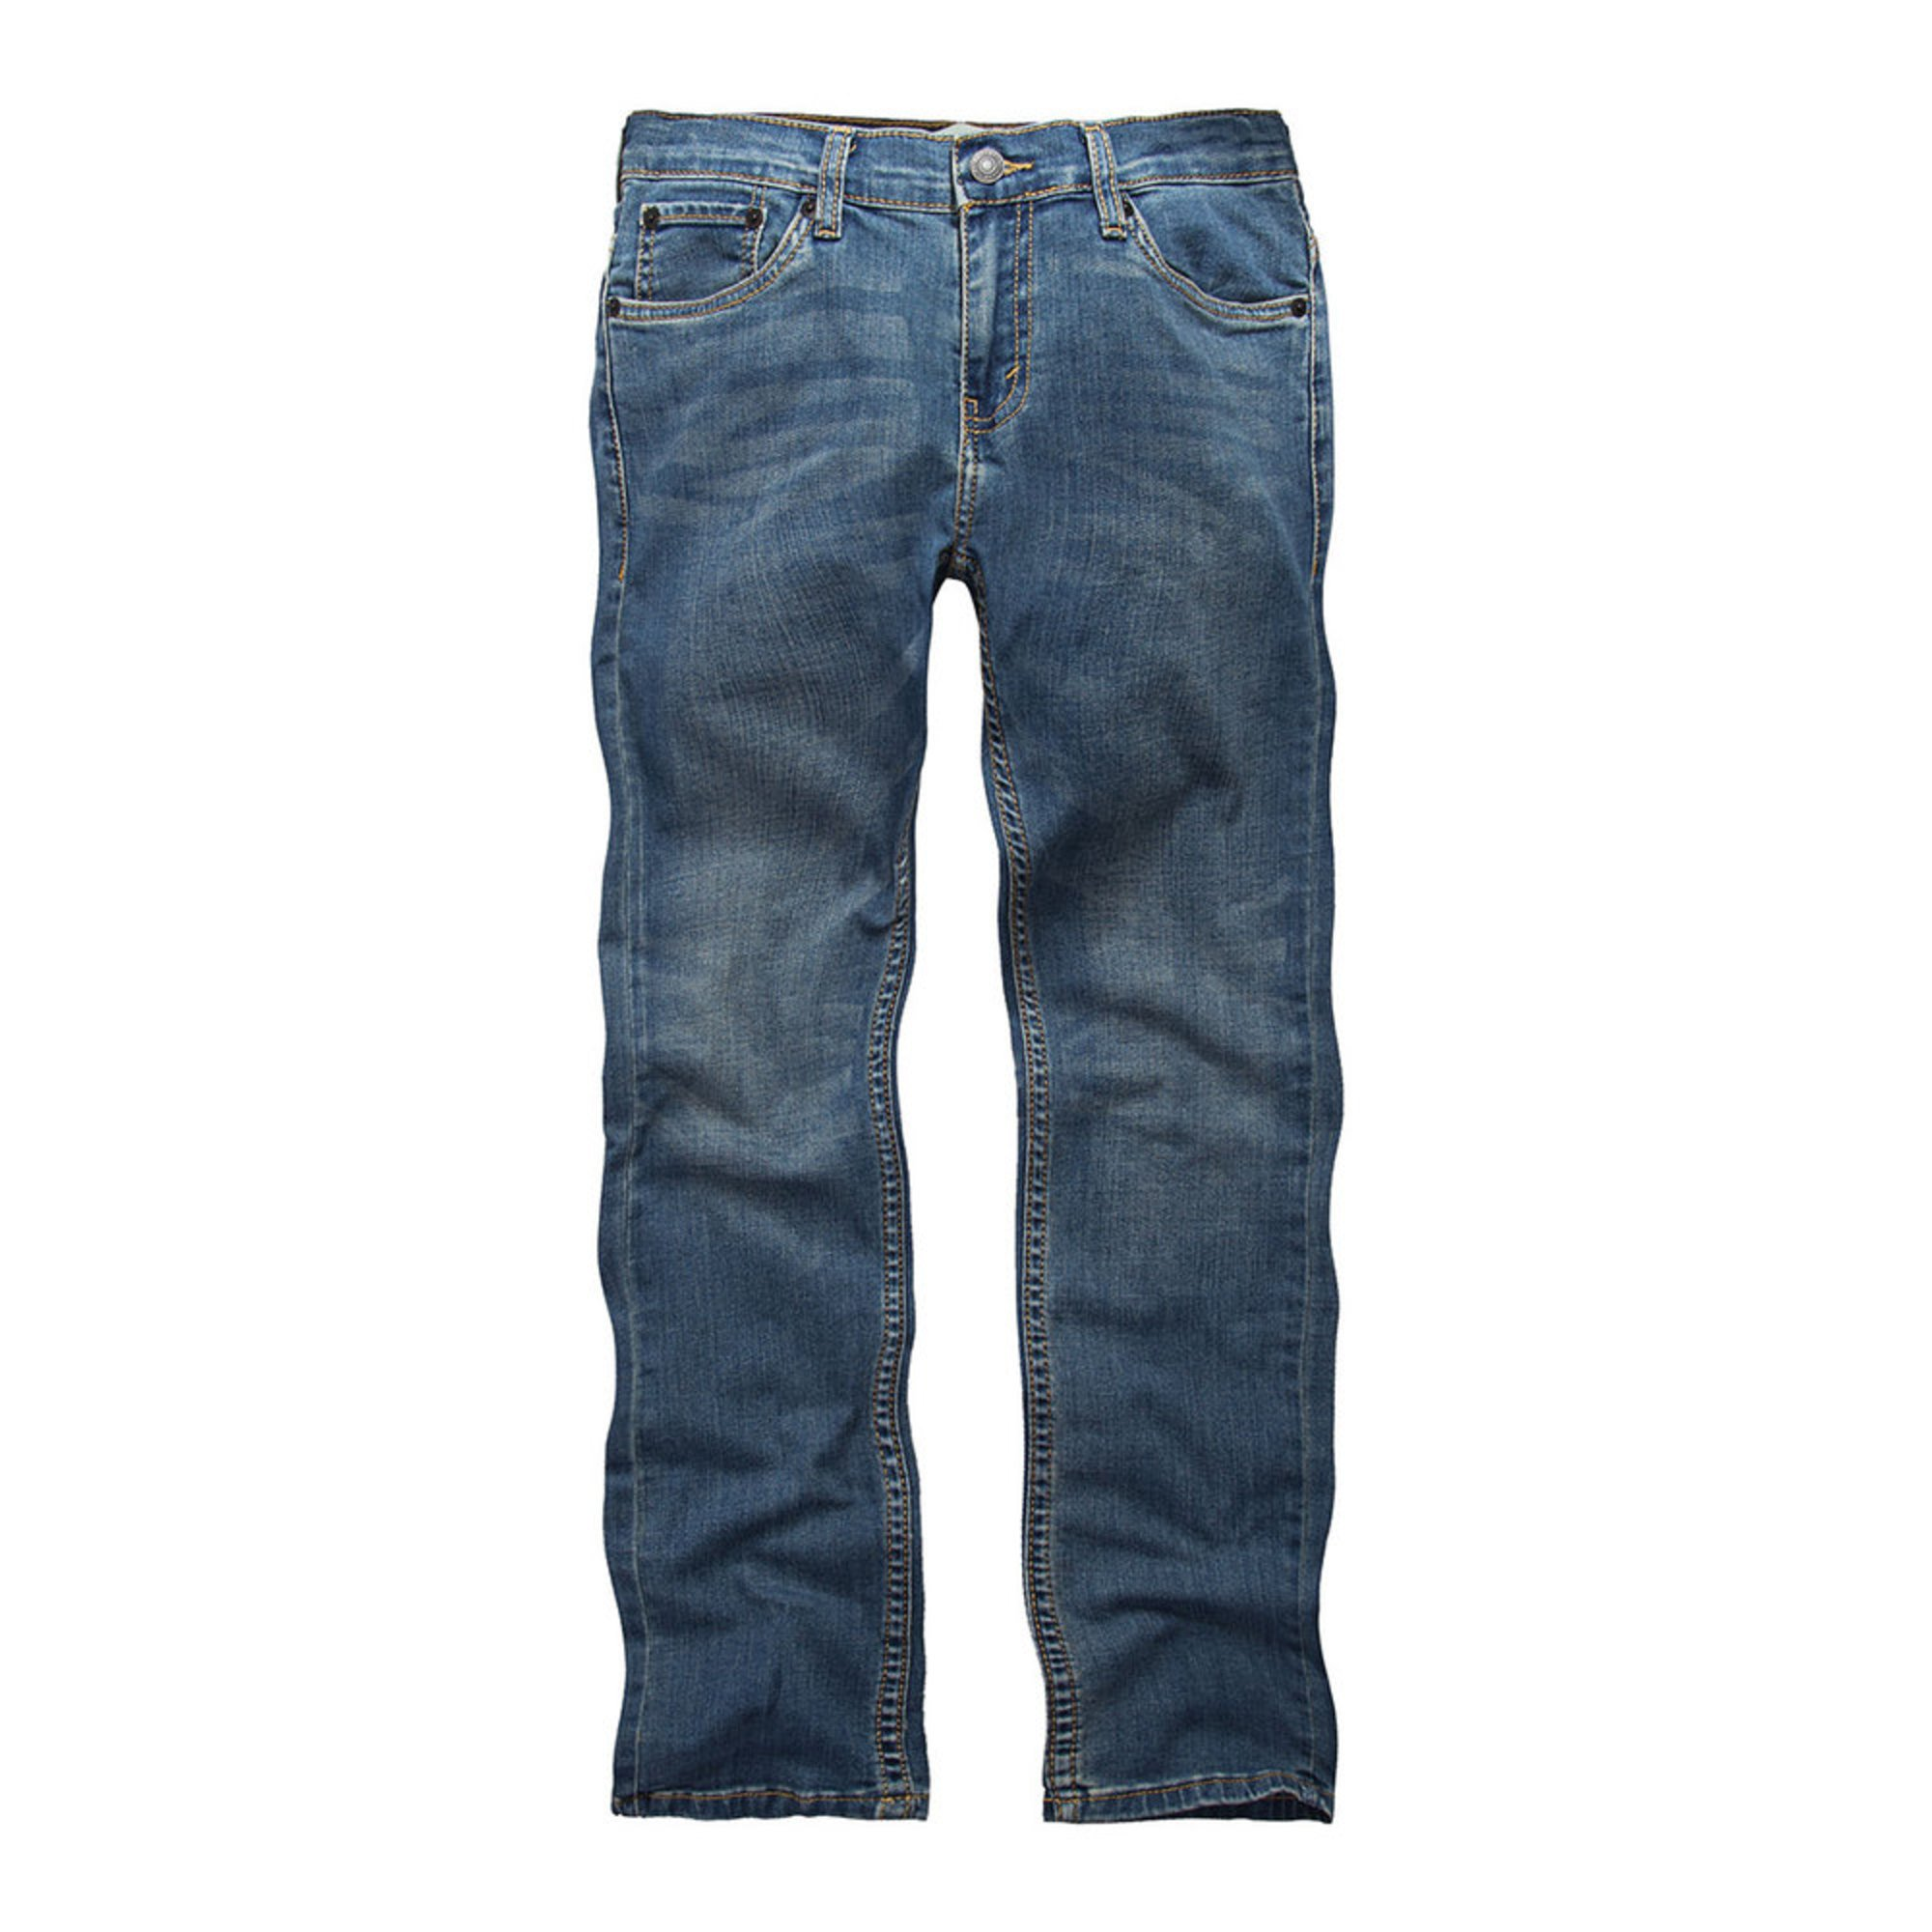 Levi's Toddler Boys' 511 Performance Jeans, Well Worn | Little Boys' Jeans  | Apparel - Shop Your Navy Exchange - Official Site